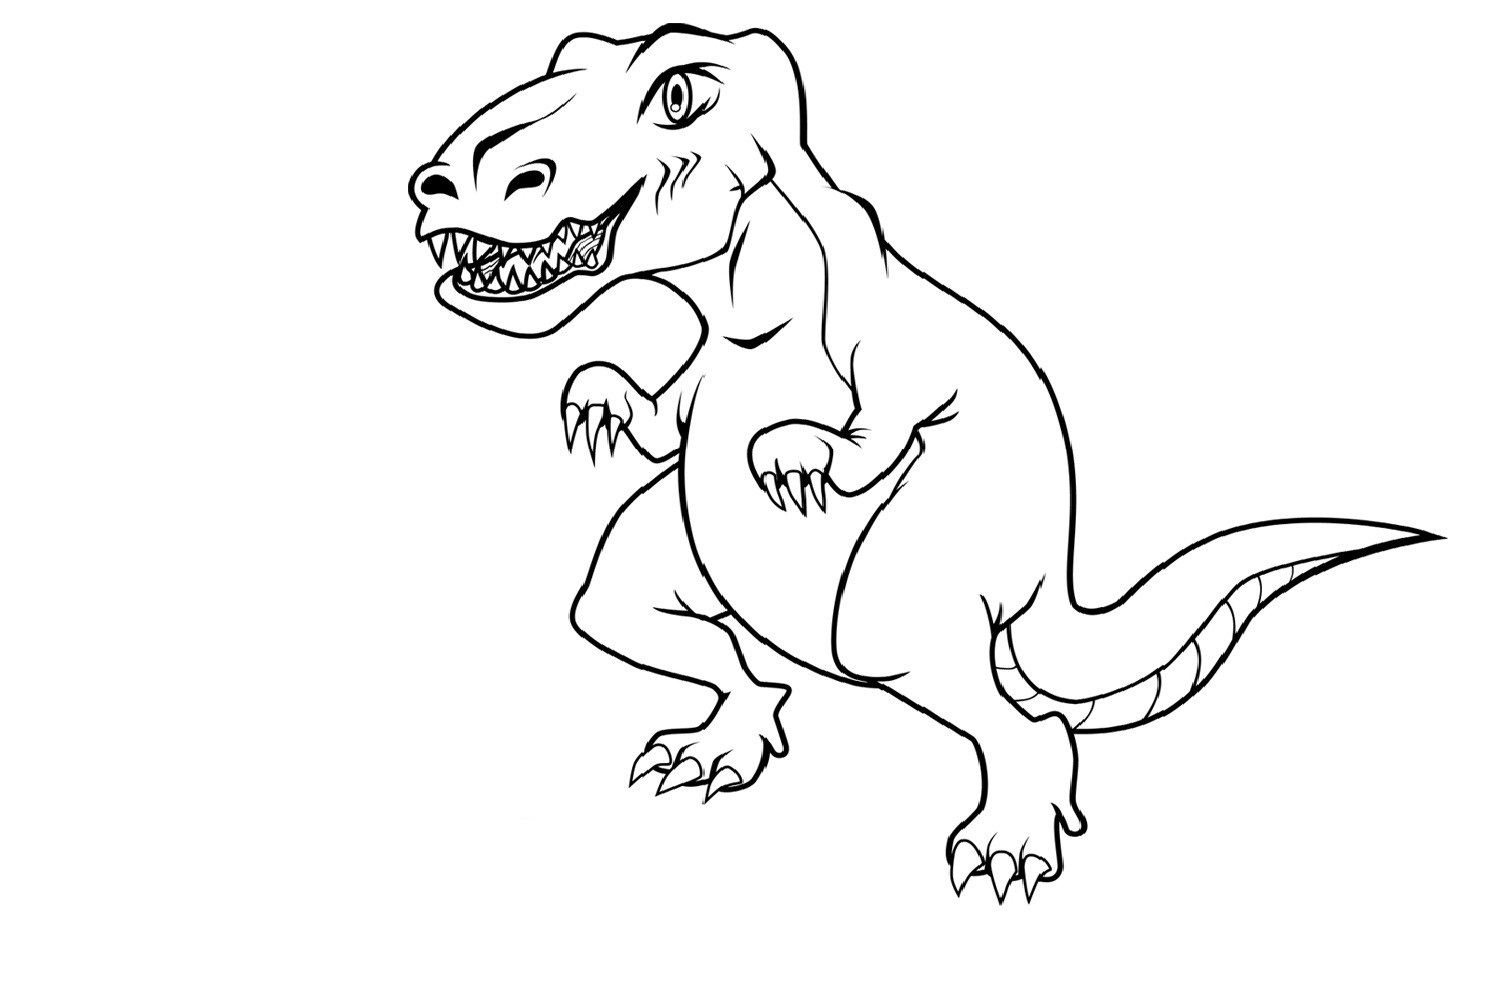 Challenger image for free printable dinosaur coloring pages